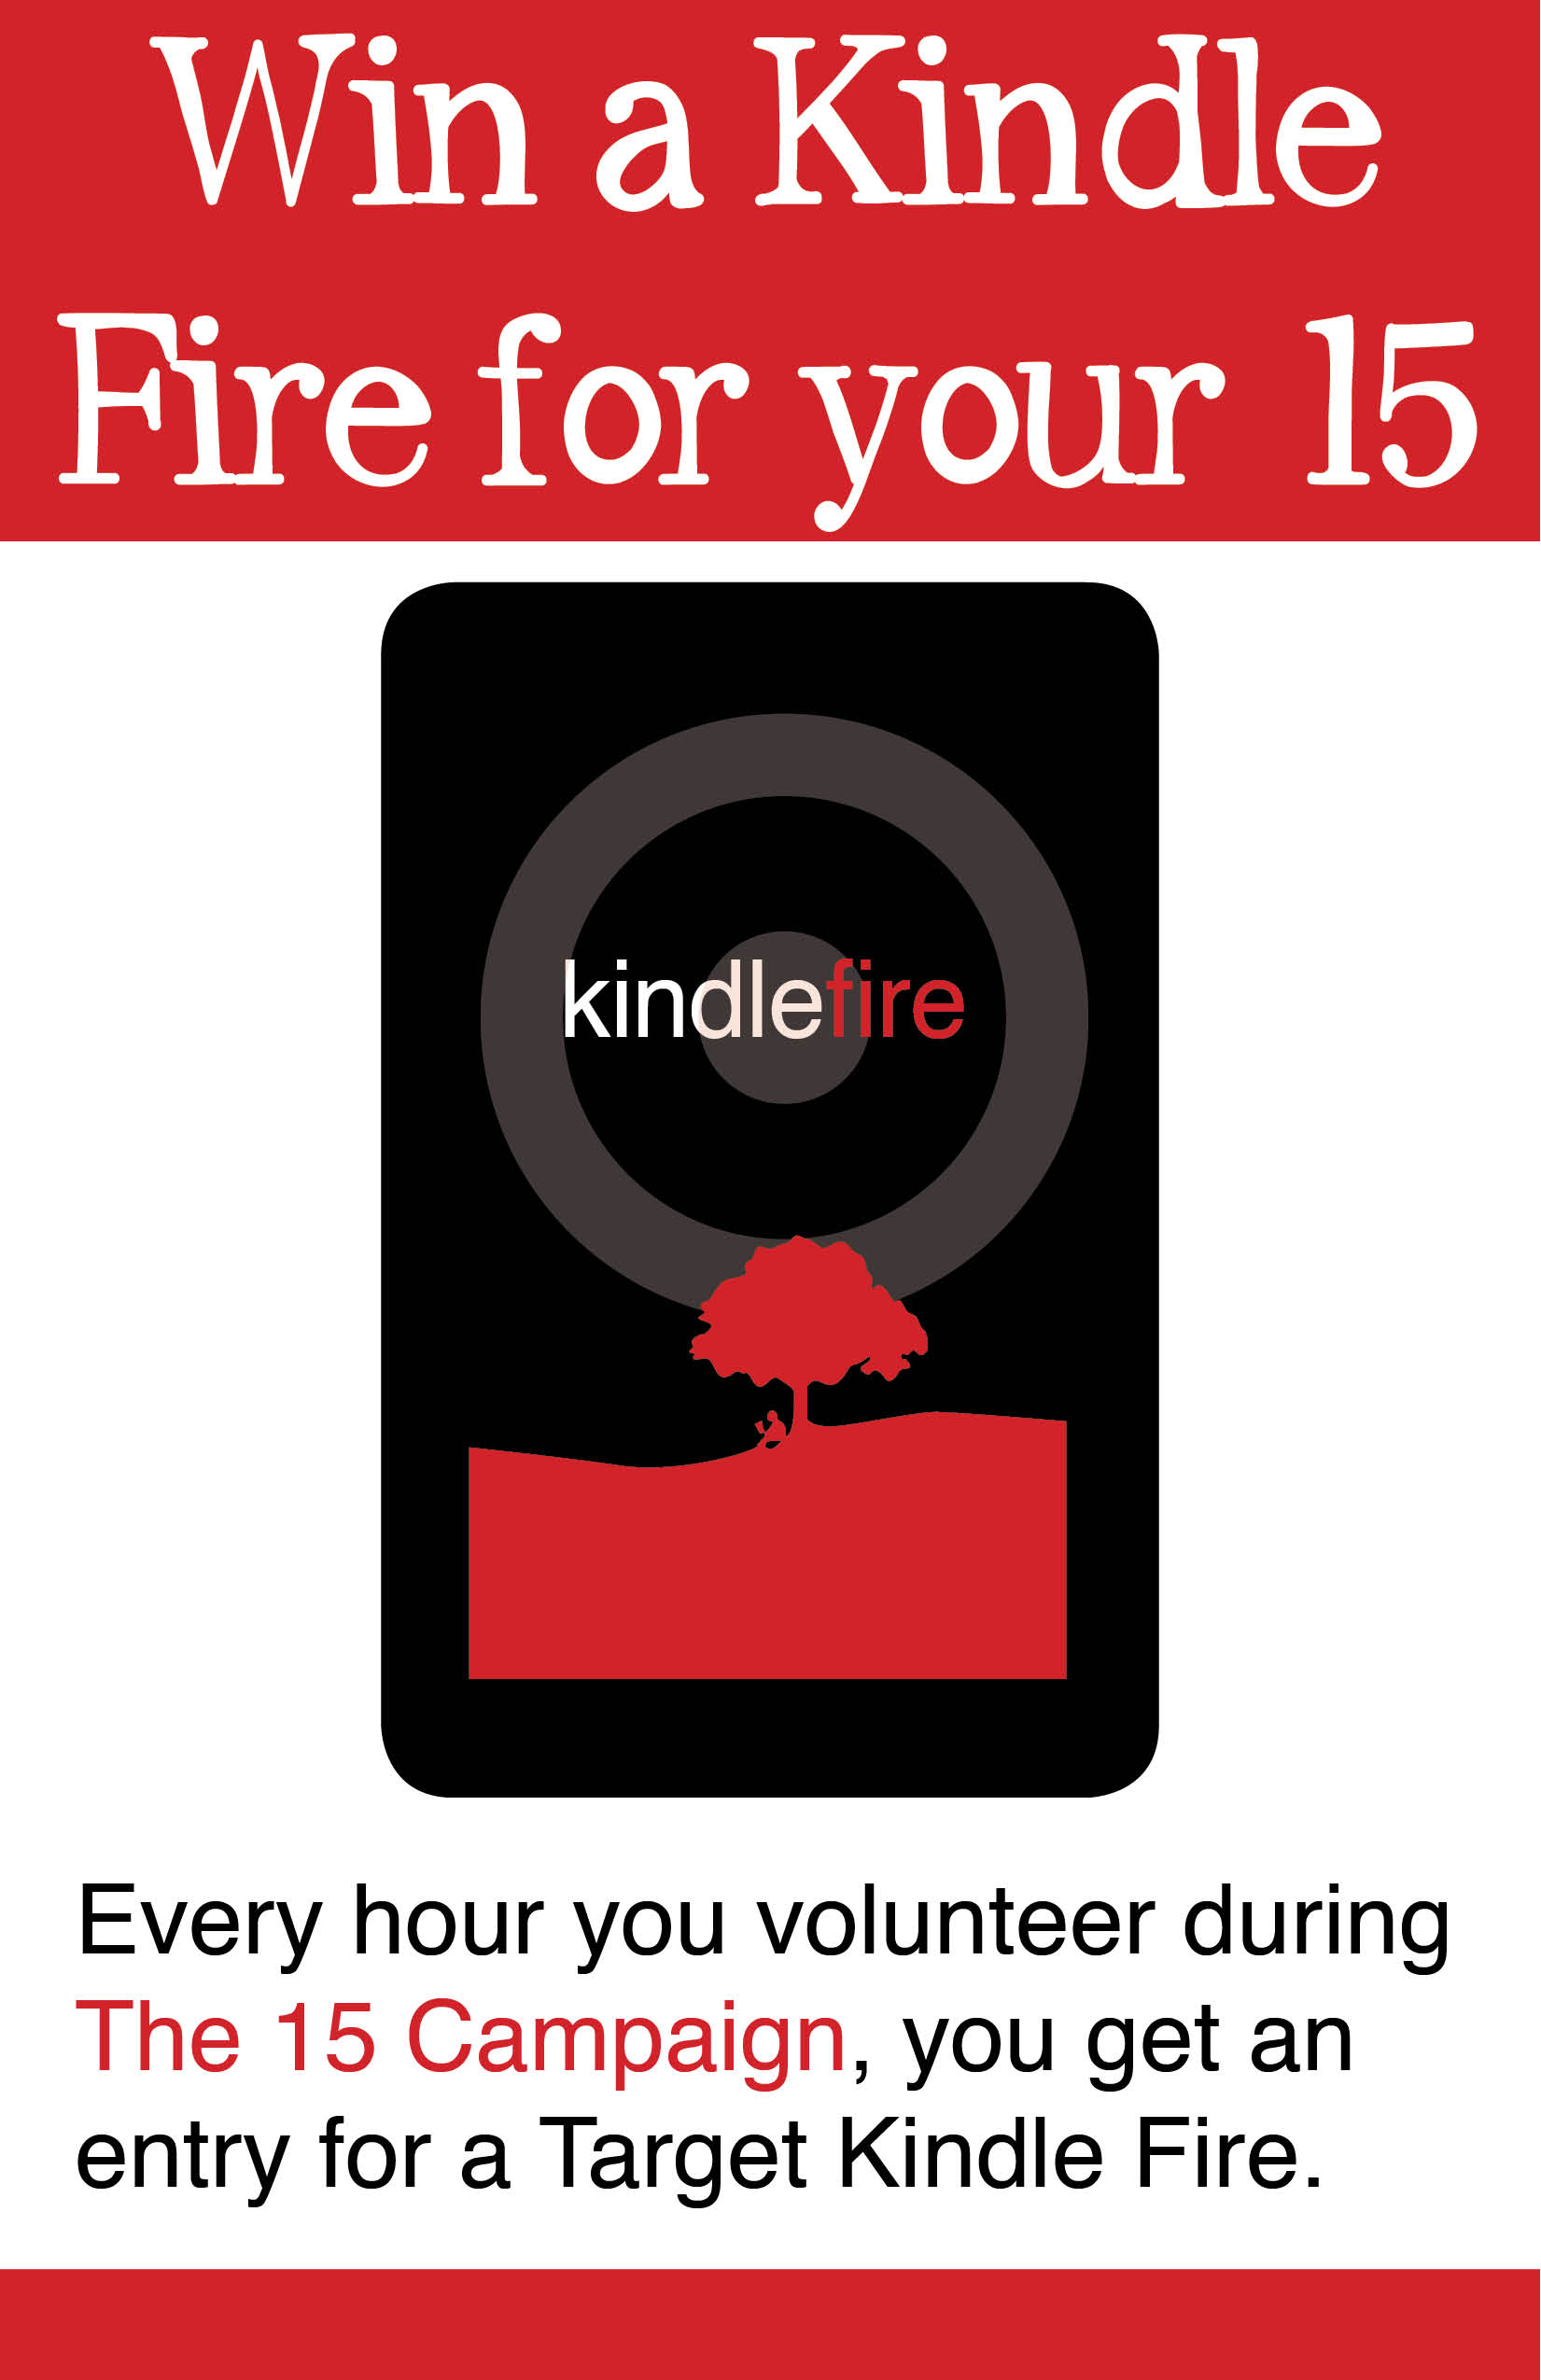 Kindle Fire Poster